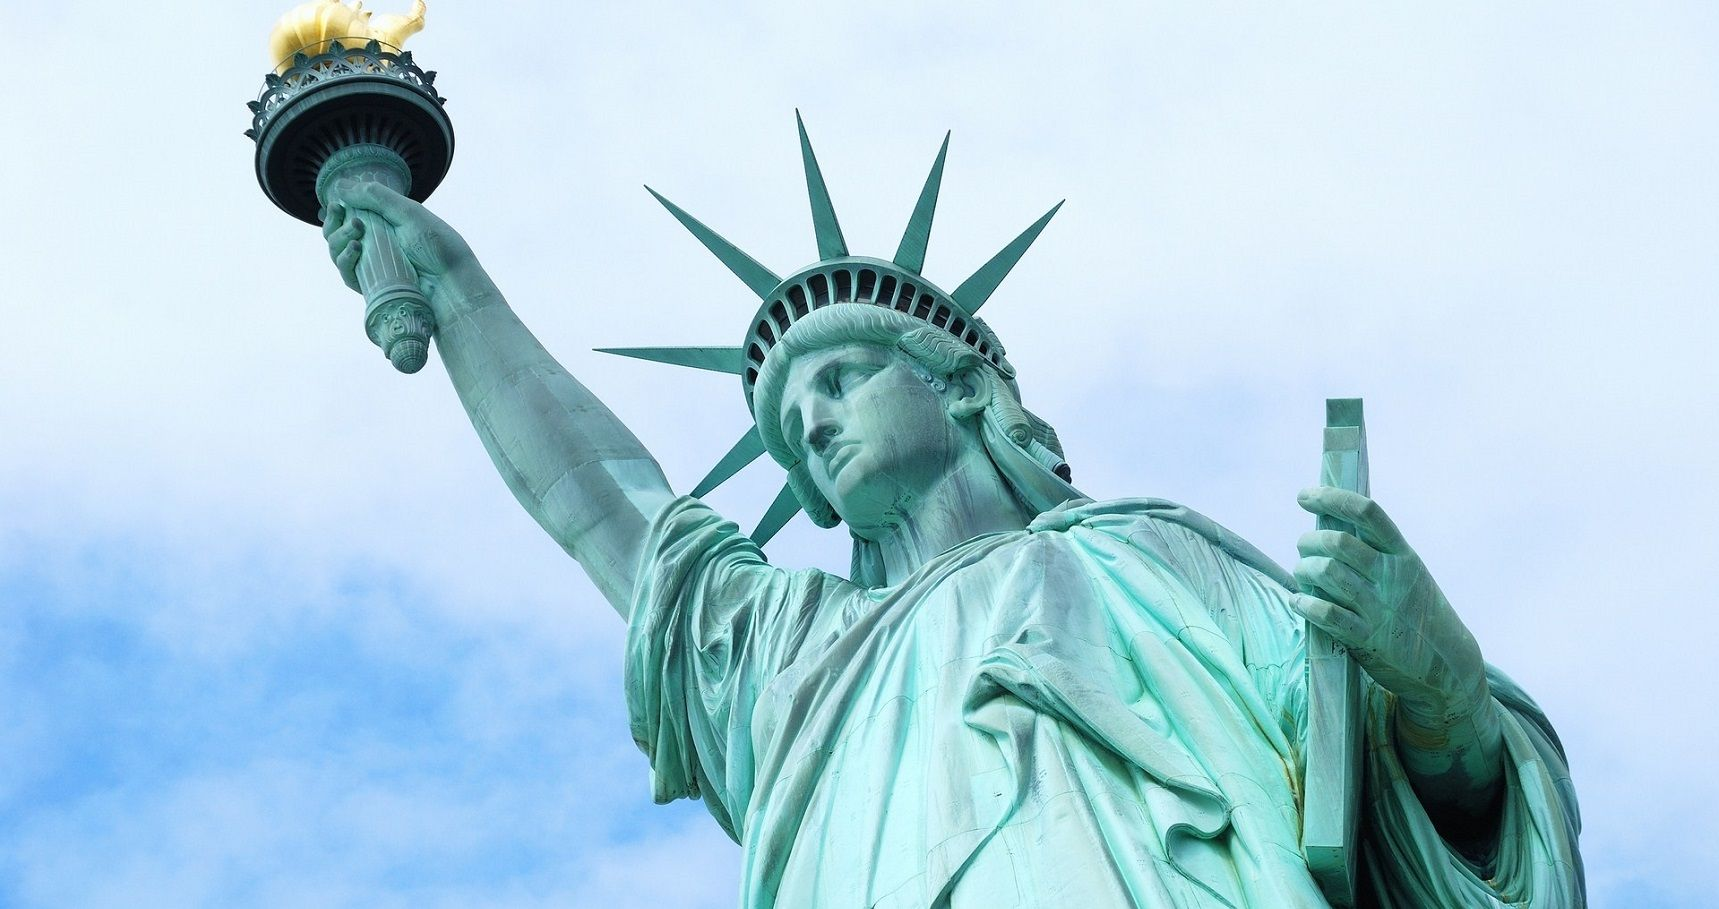 10 Things You Didn't know About The Statue Of Liberty